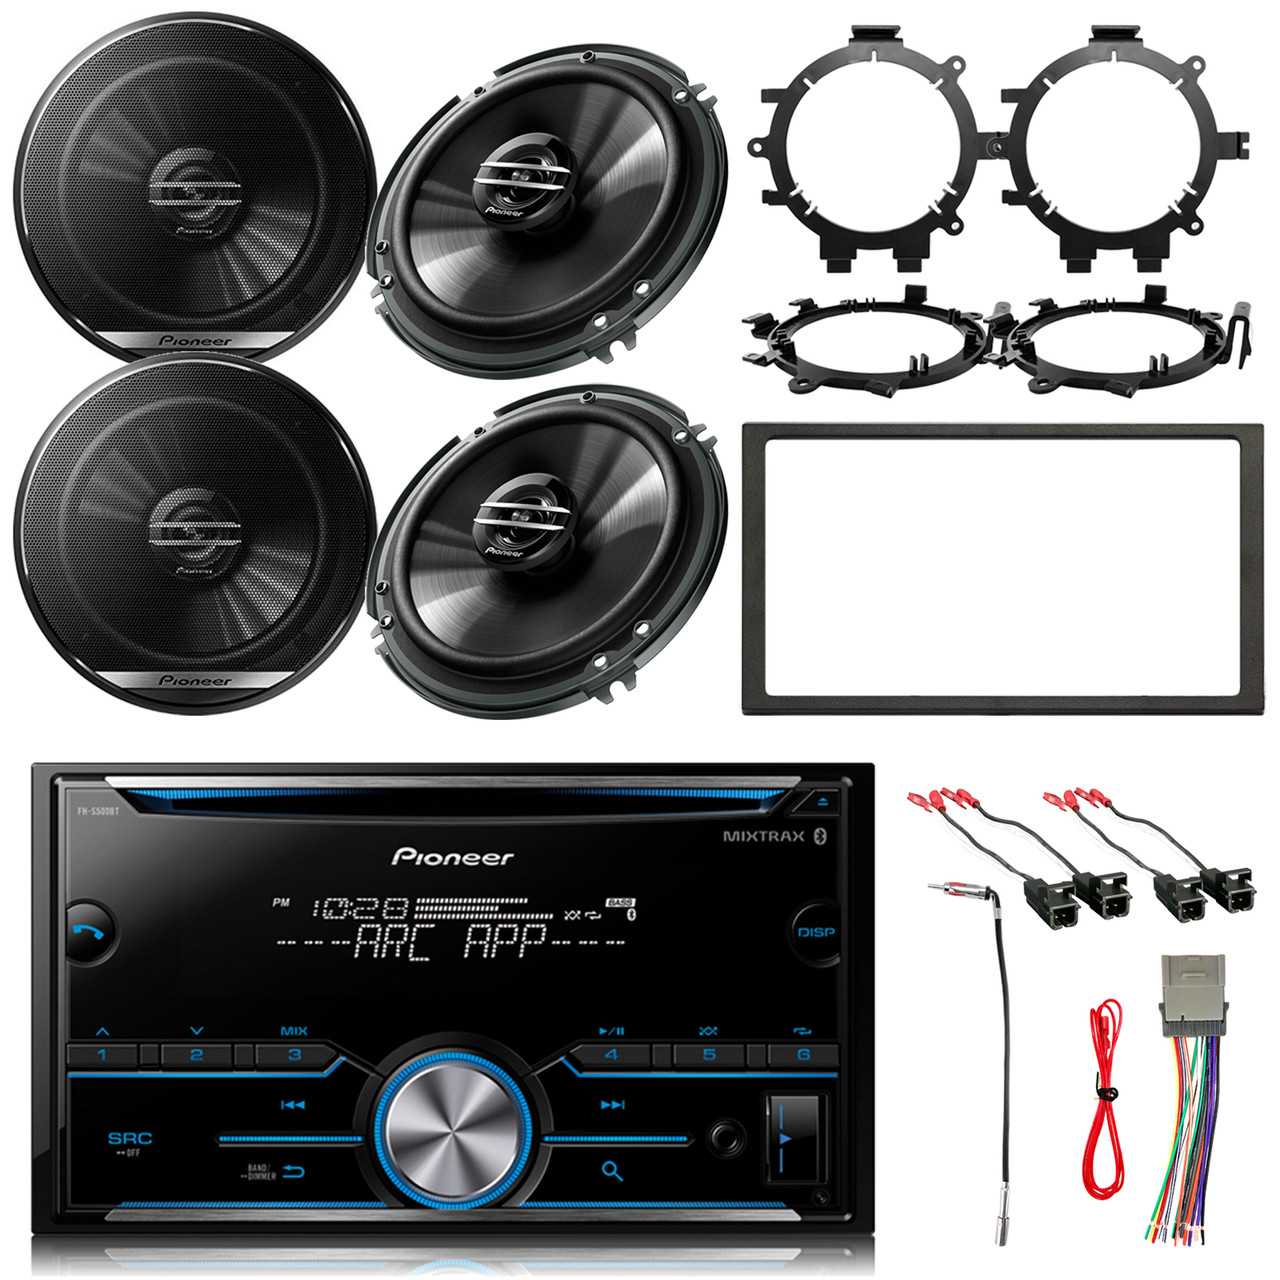 small resolution of pioneer double din bluetooth mixtrax cd receiver 4x 6 5 speakers enrock dash kit stereo wiring harness antenna adapter 4x speaker wire harness